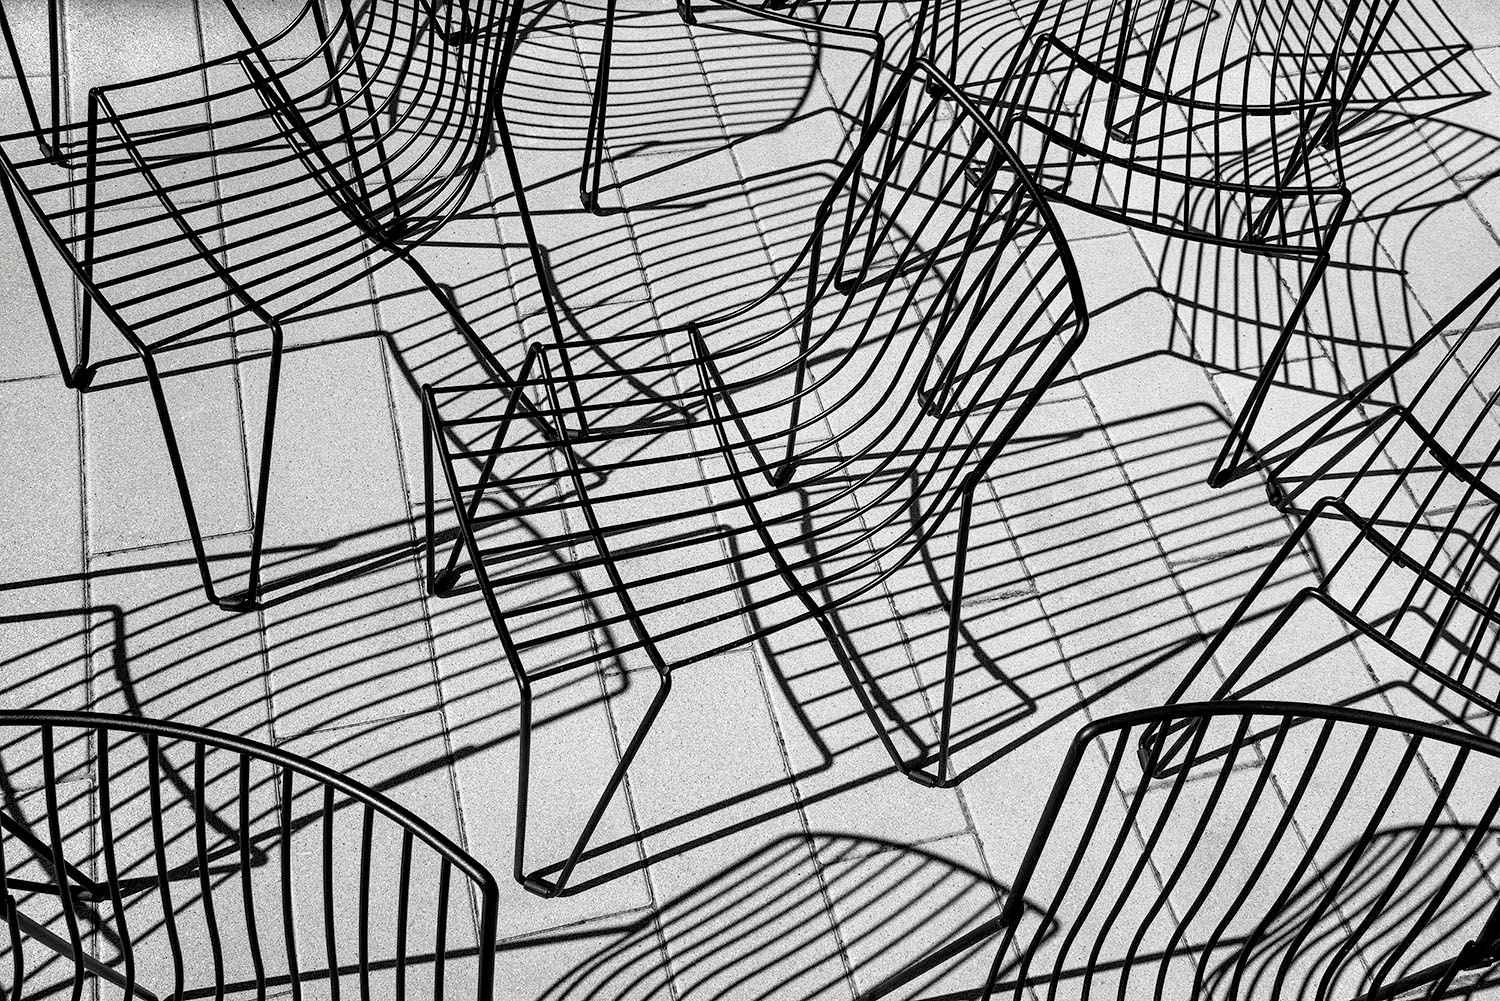 Abstract Chairs and Shadows